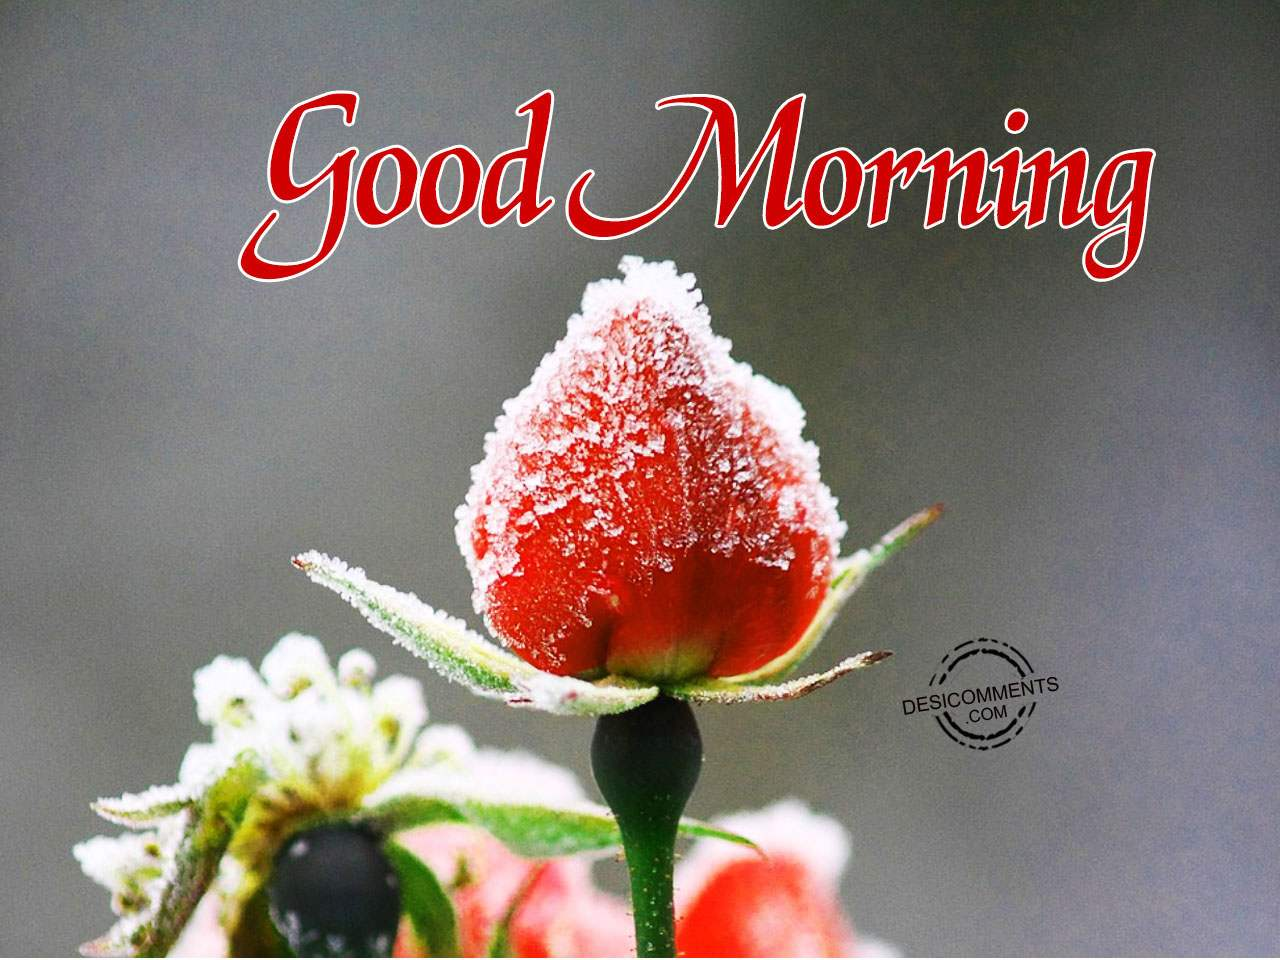 Image Of Good Morning Have A Great Day Desicomments Com